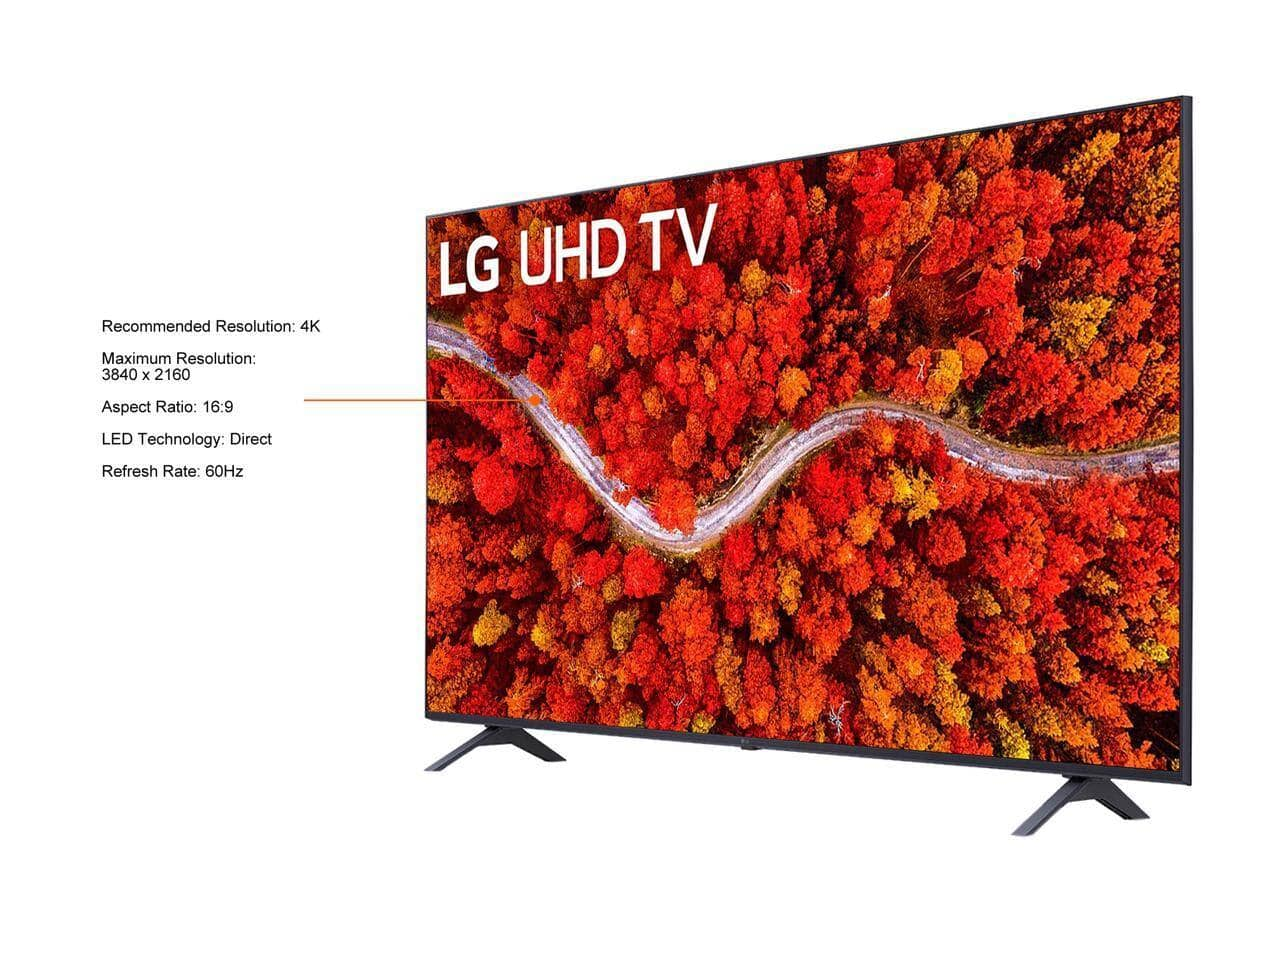 LG UHD 80 Series 43 inch Class 4K Smart UHD TV with AI ThinQ (43UP8000PUA, 2021) $399 After Code $399.99